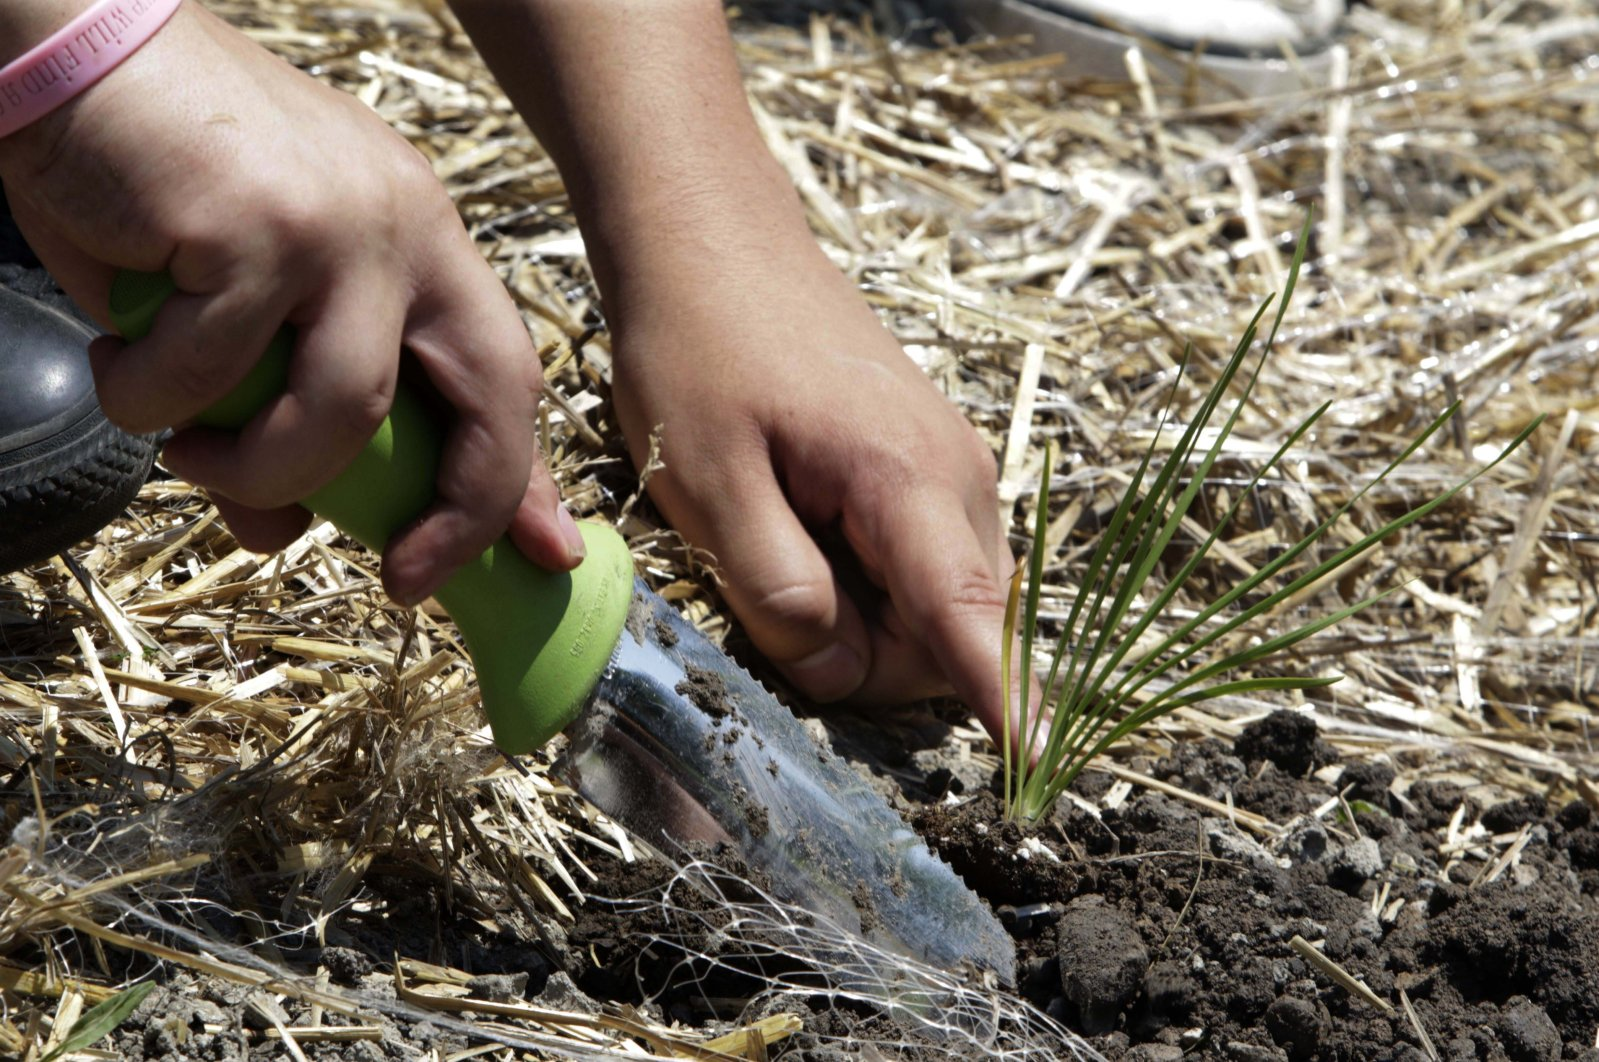 A man puts an onion plant in the ground during a gardening exercise with the American Indian Center in Chicago, Illinois, July 10, 2014. (AP Photo)